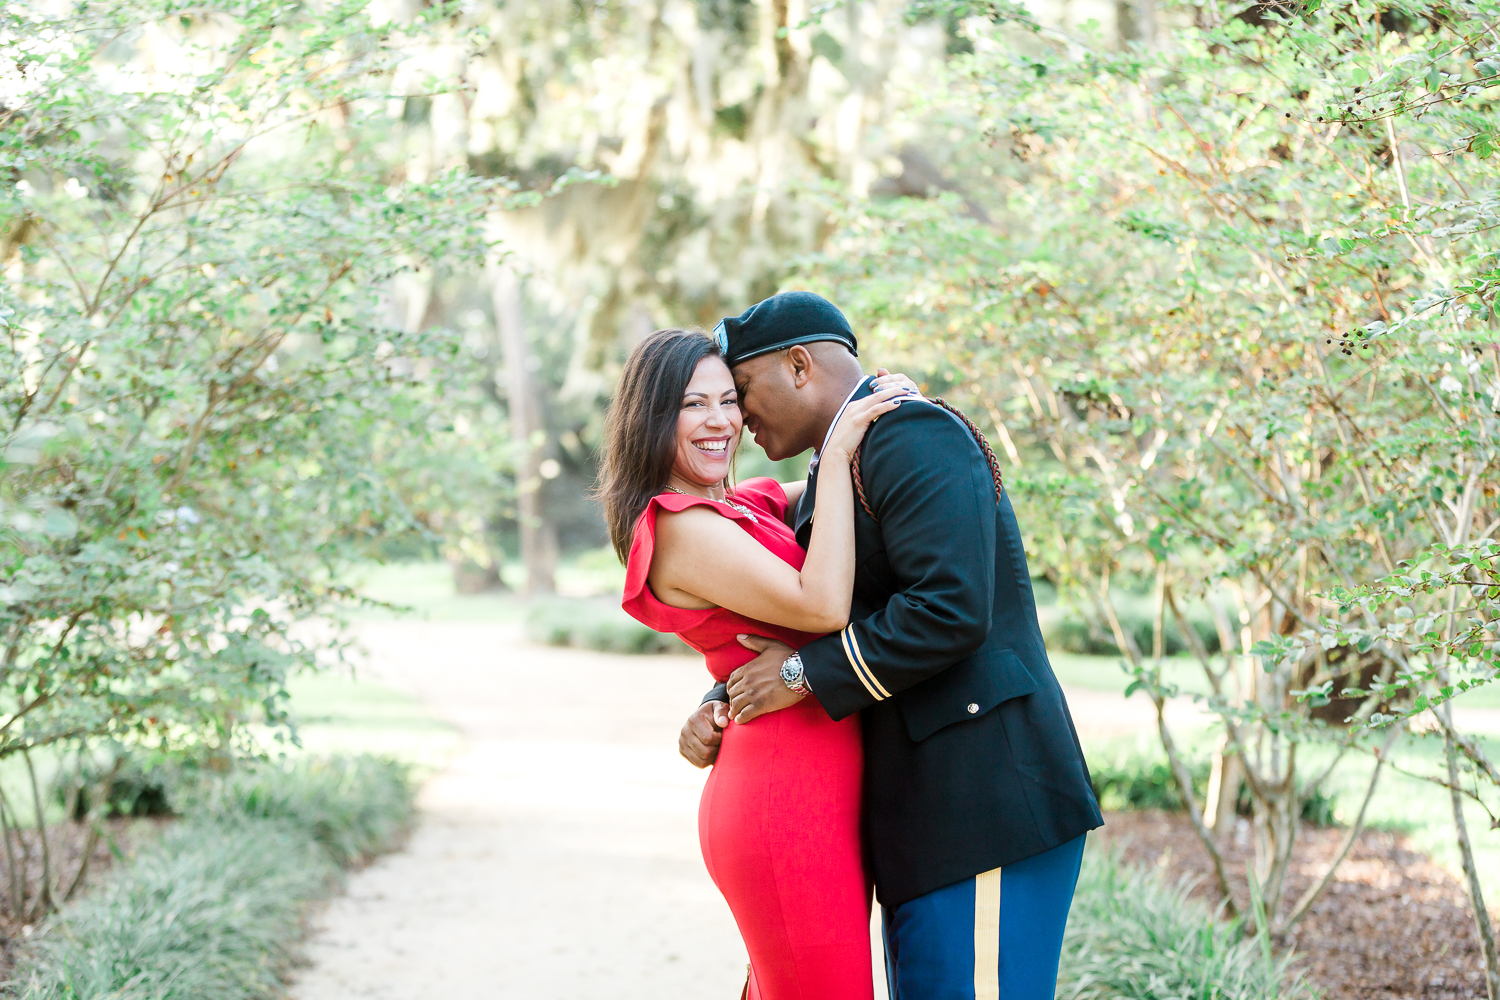 military uniform engagement session ideas